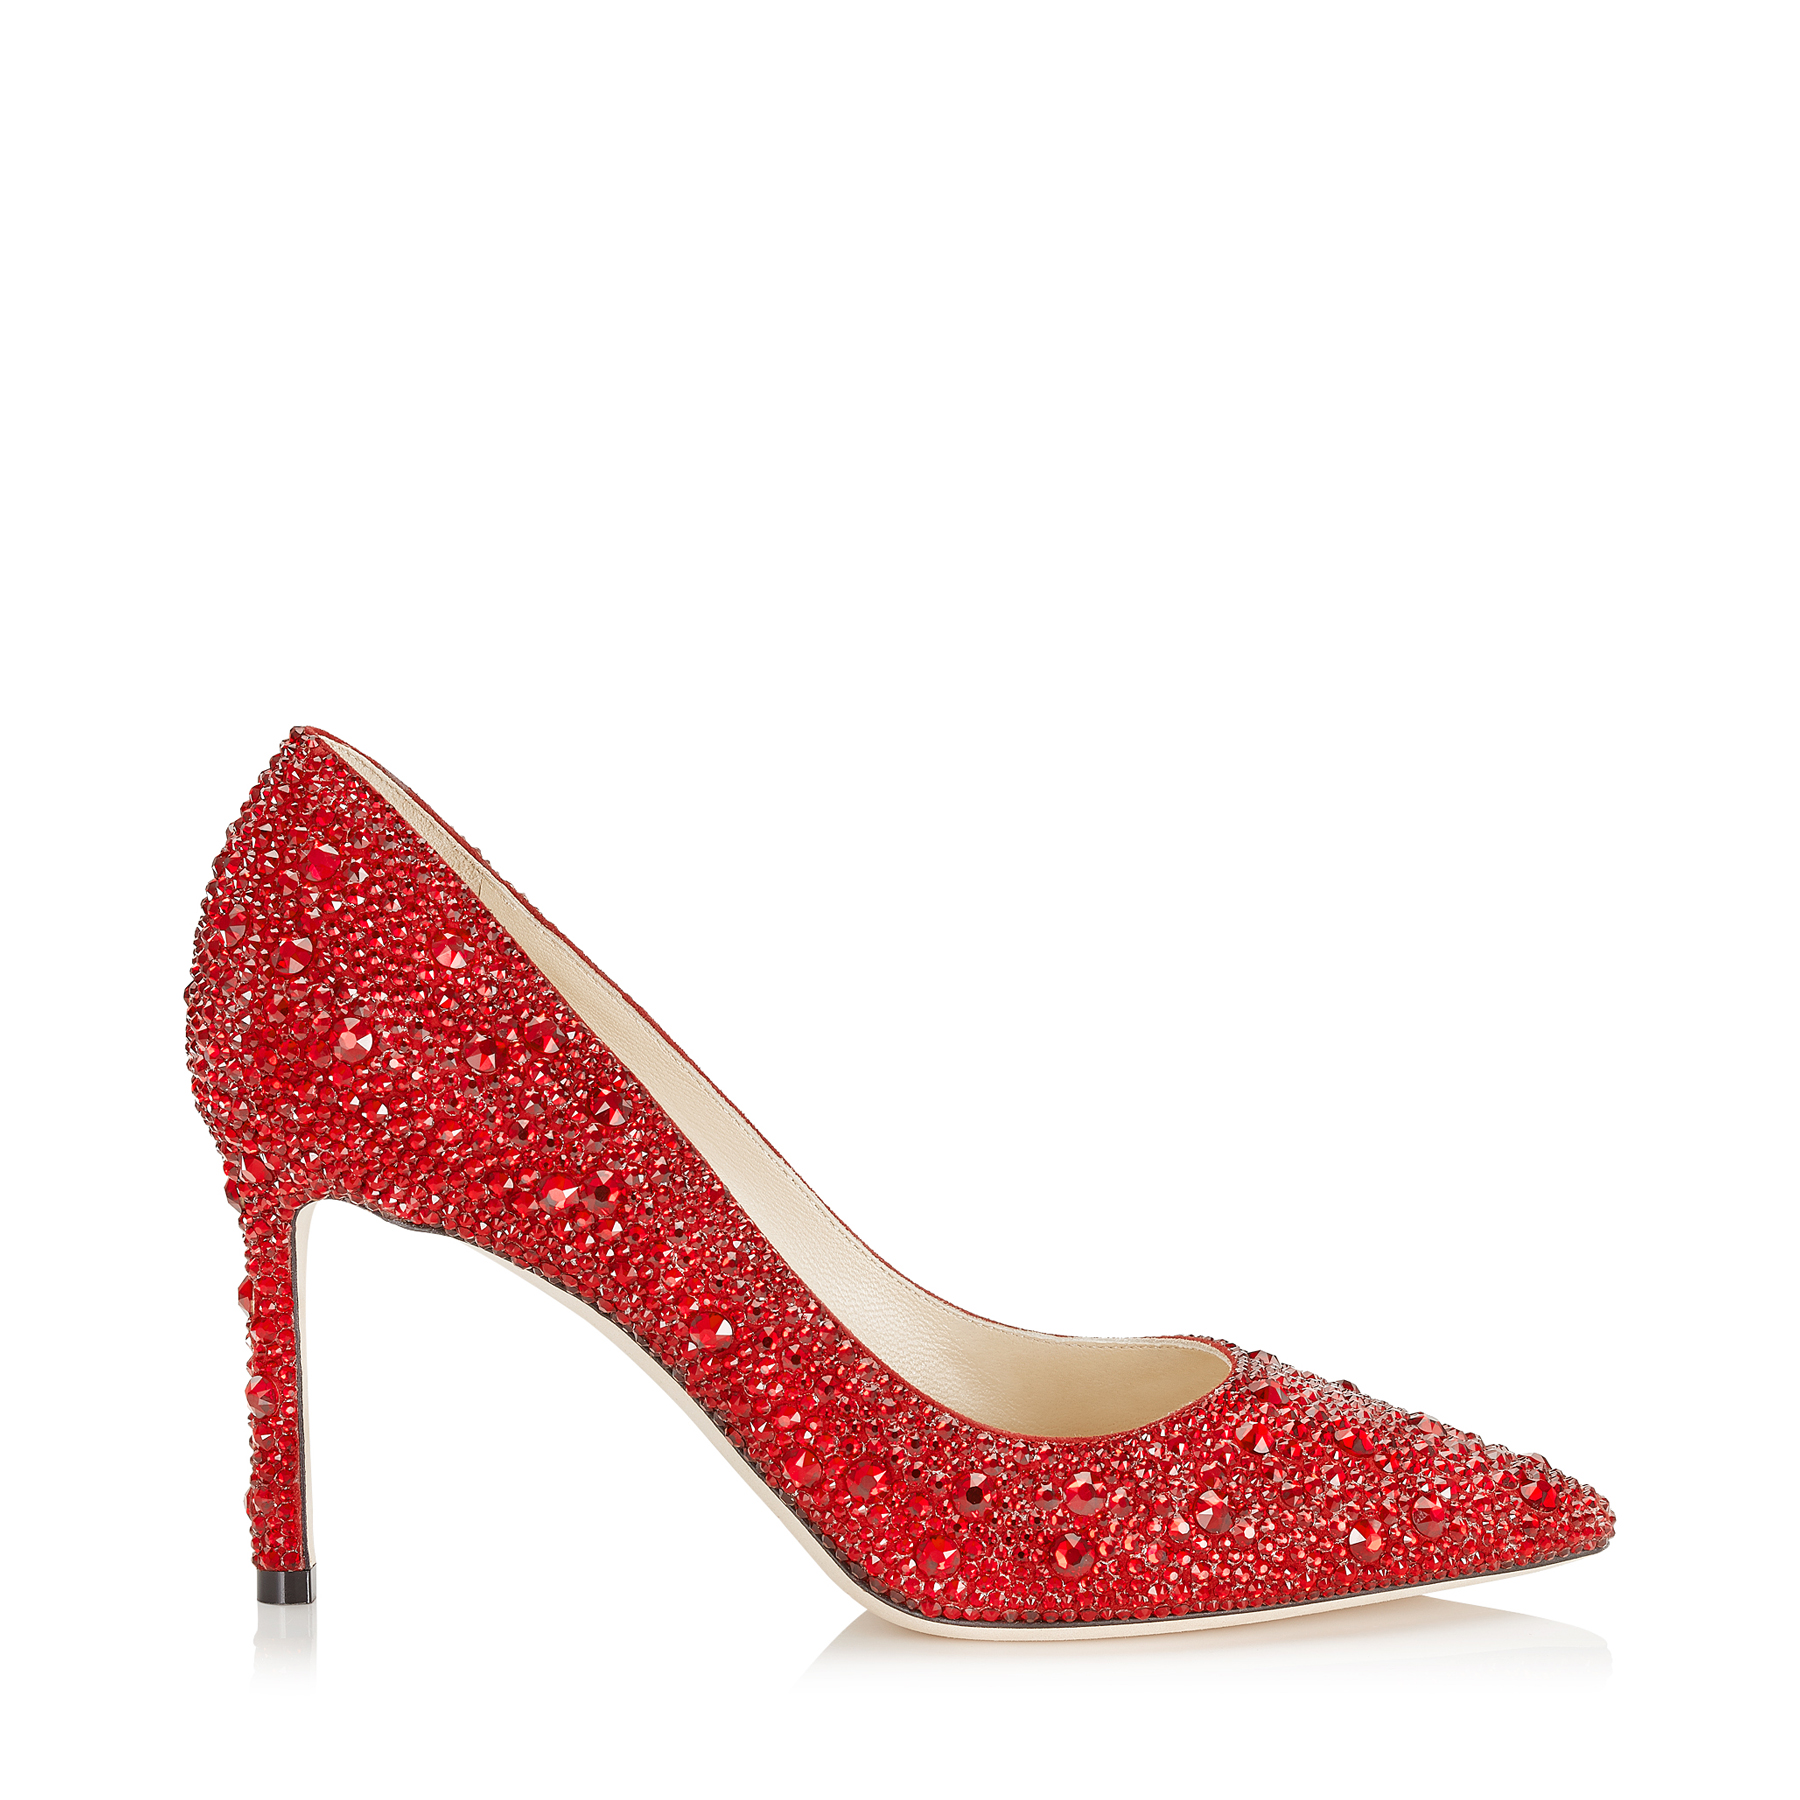 ROMY 85 Red Crystal Covered Pointy Toe Pumps by Jimmy Choo